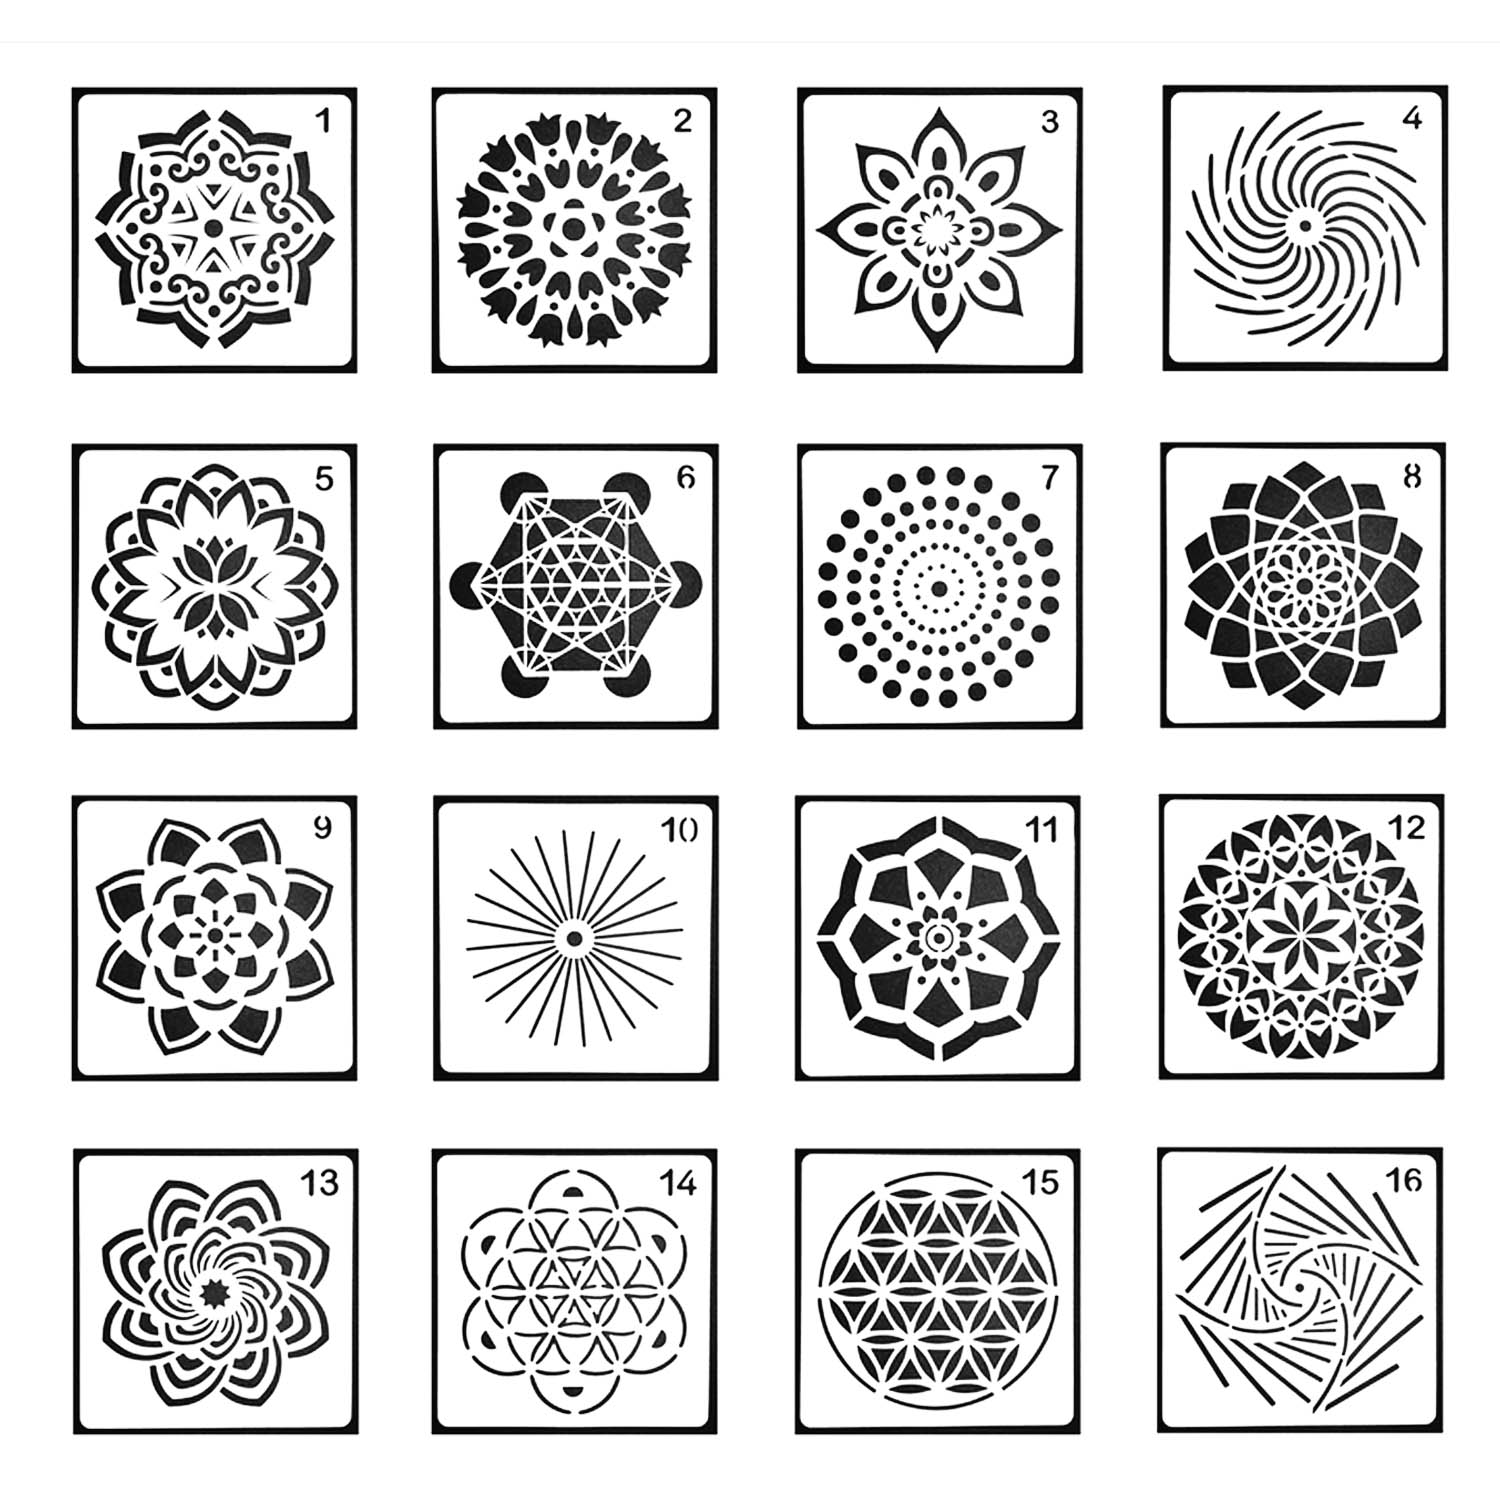 16pcs Mandala Dotting Tools Templates Stencil Set For DIY Painting Drawing Drafting Art Craft Projects